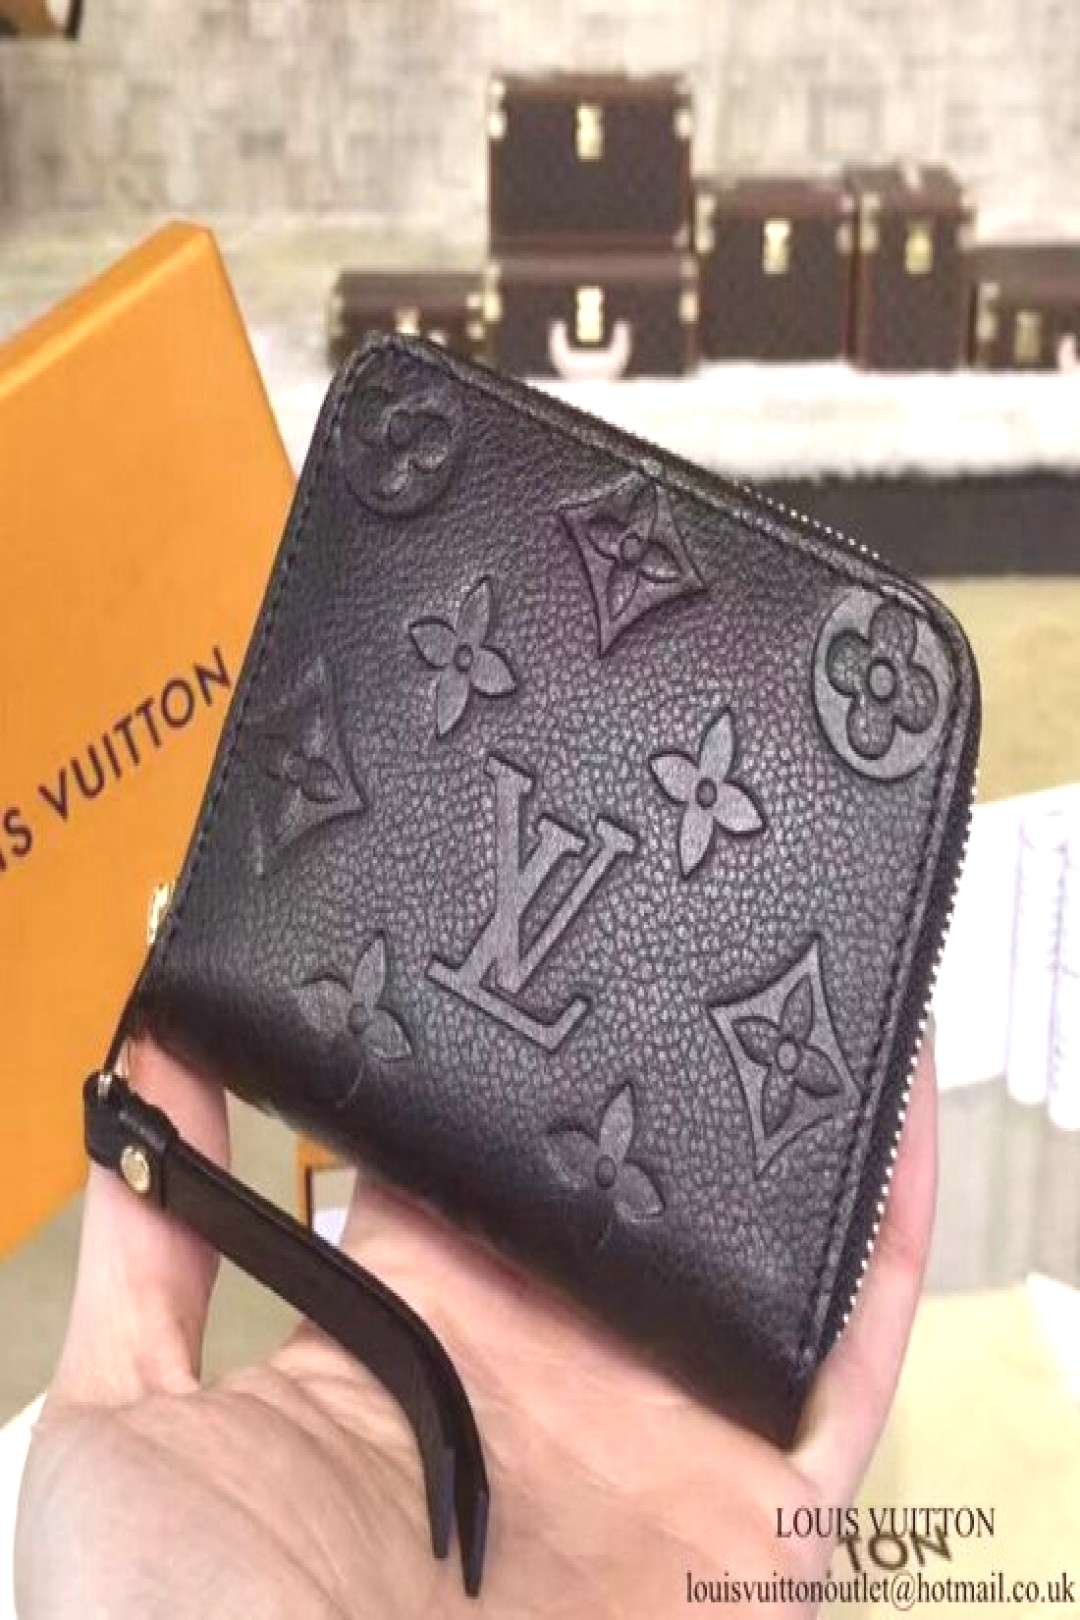 New LV Collection for Louis Vuitton.